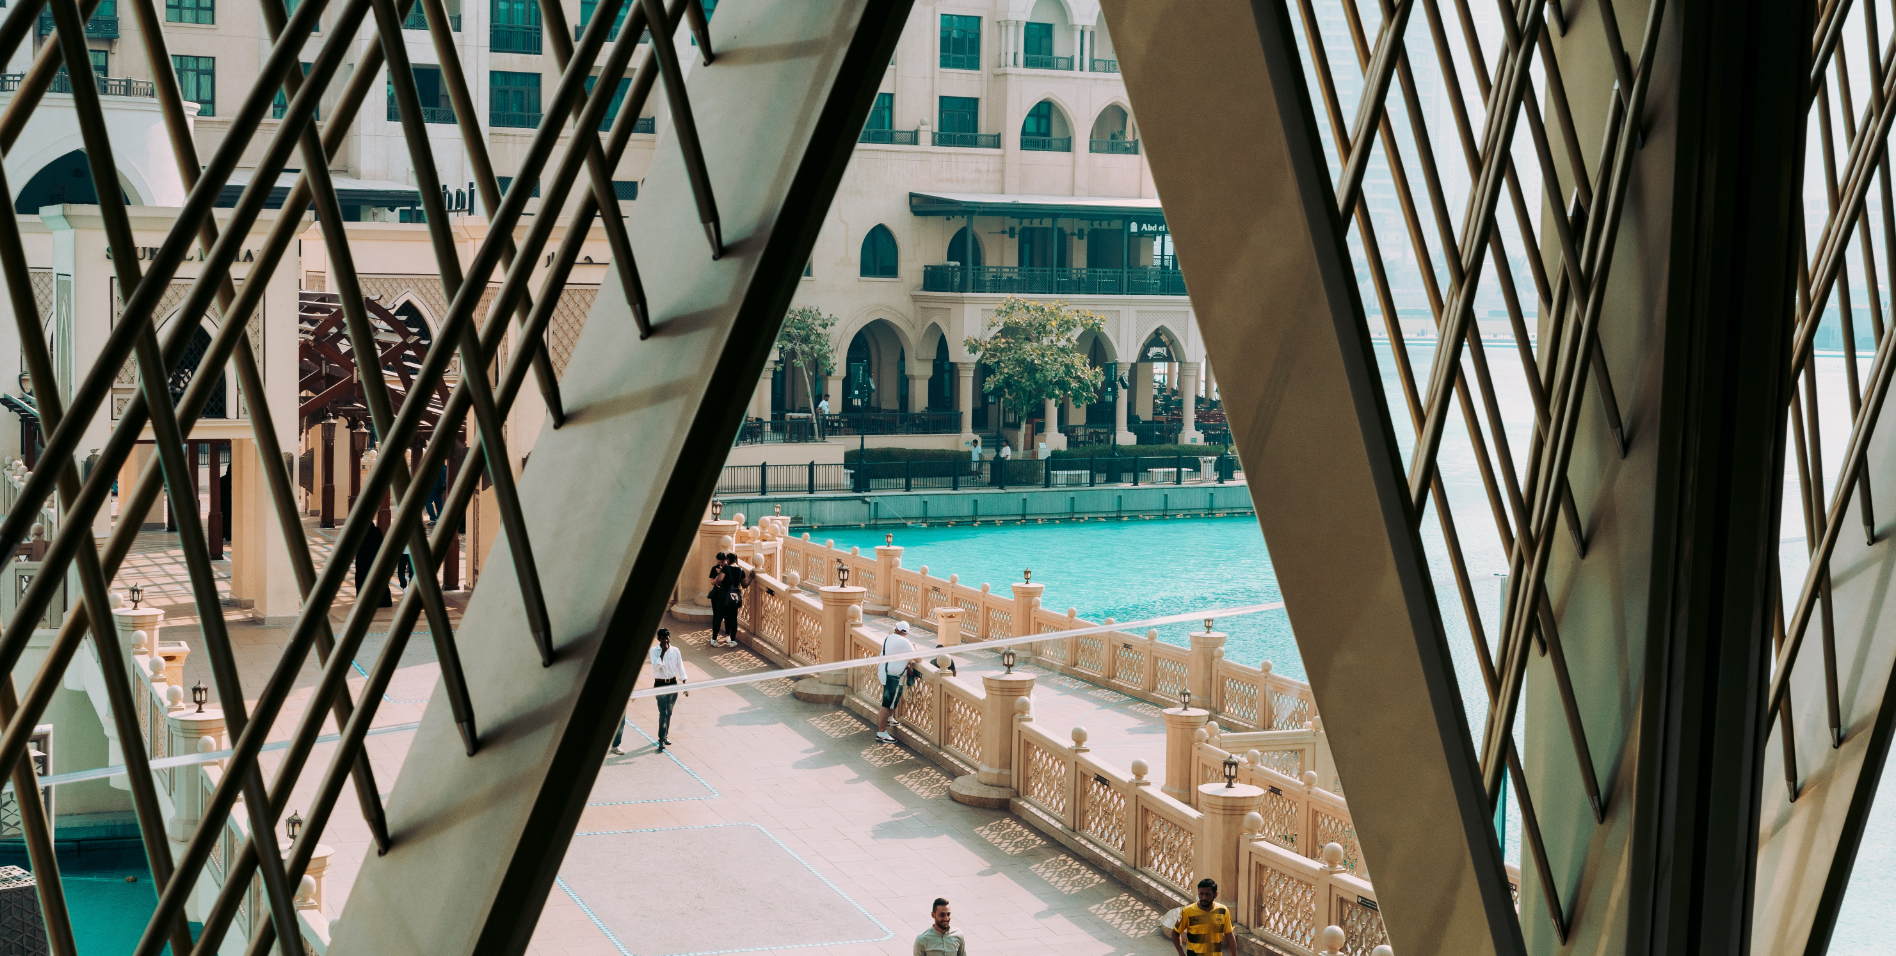 External view of Dubai mall with pool